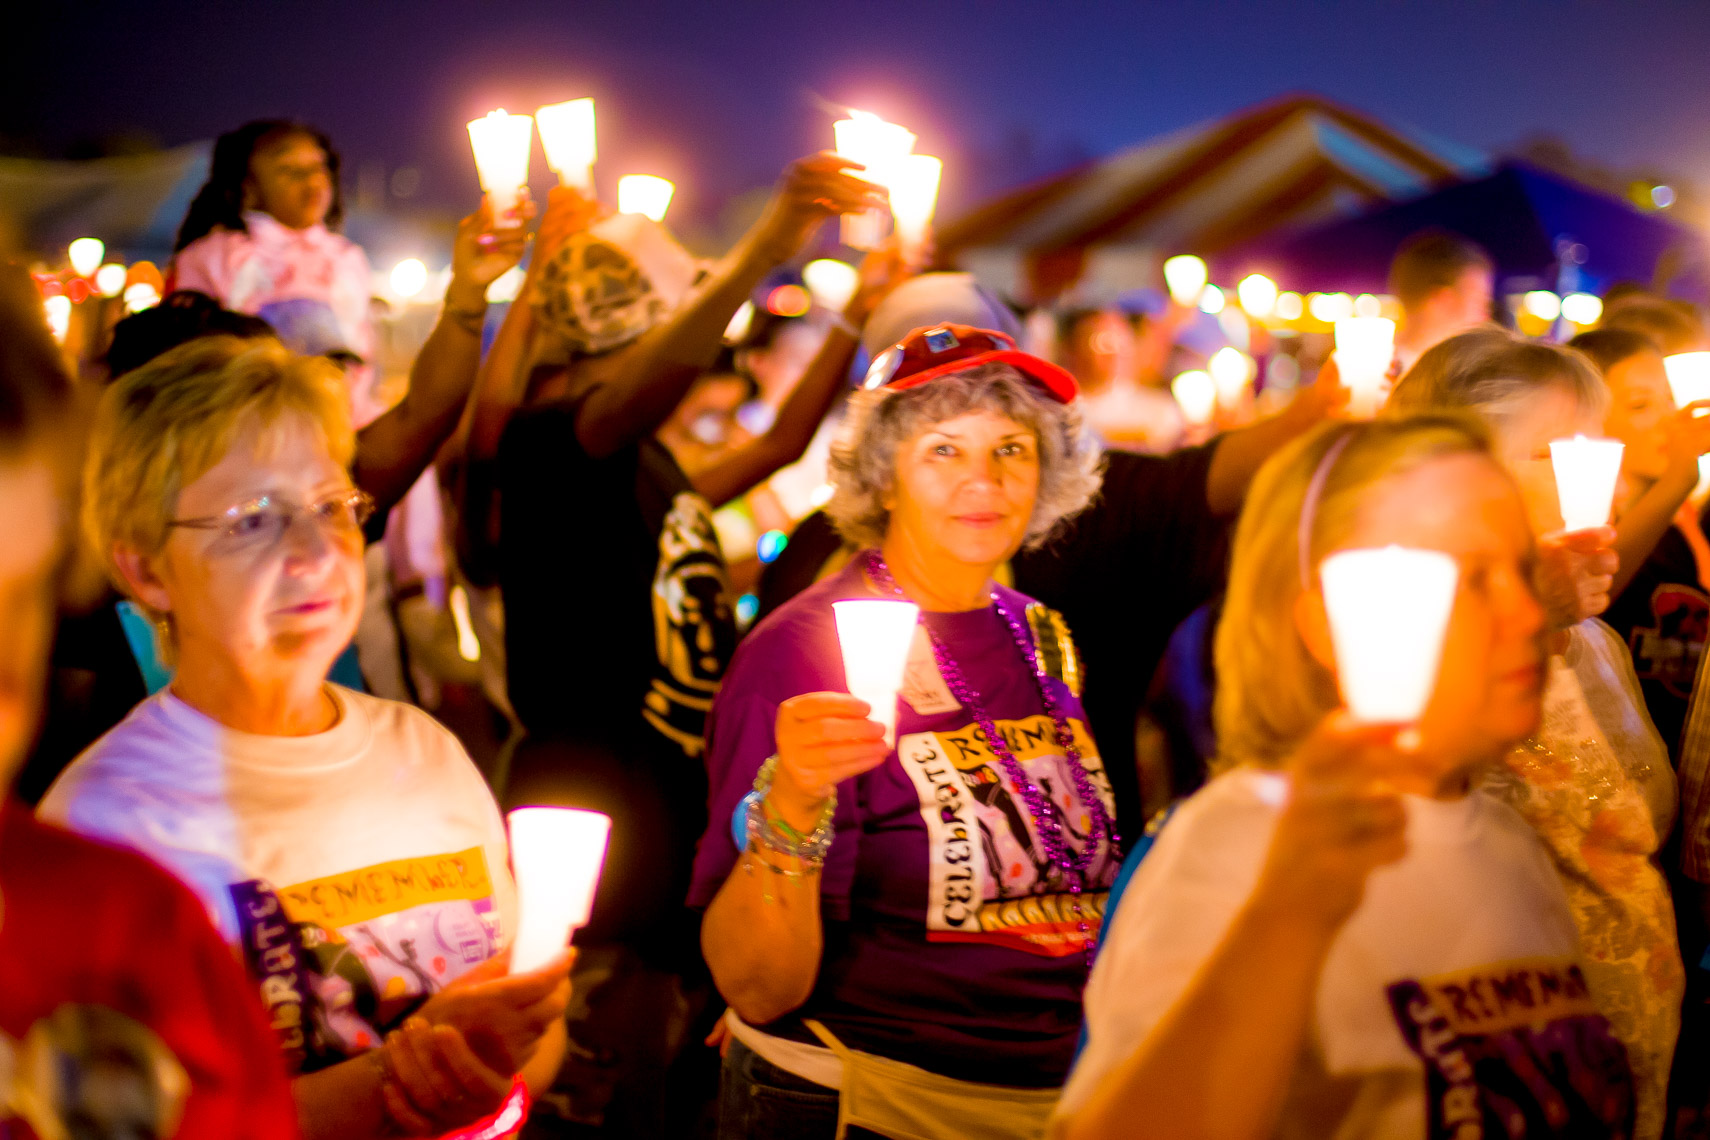 Relay for Life Event near Atlanta, GA